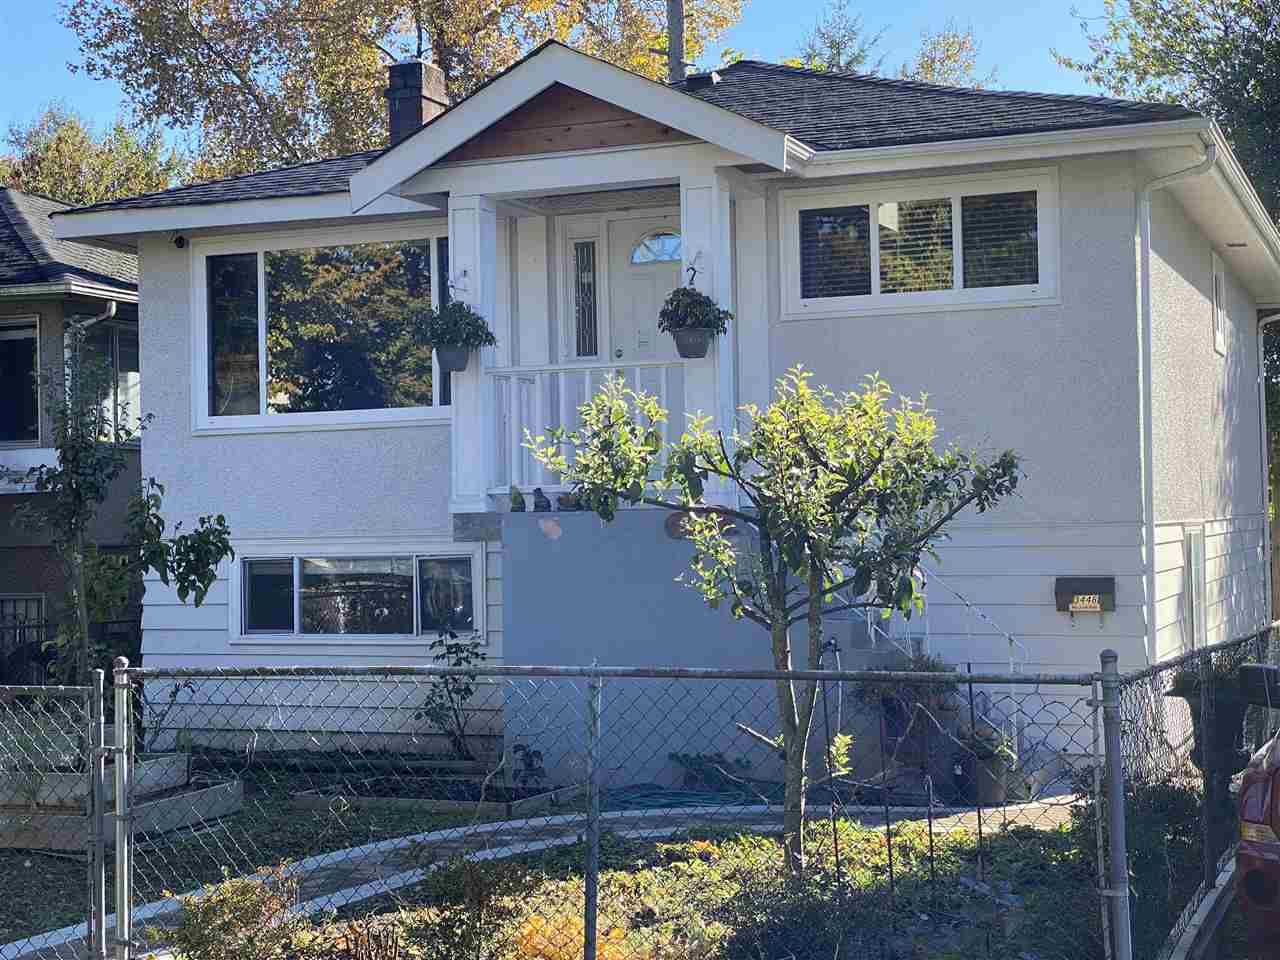 Main Photo: 3446 WILLIAM Street in Vancouver: Renfrew VE House for sale (Vancouver East)  : MLS®# R2512996